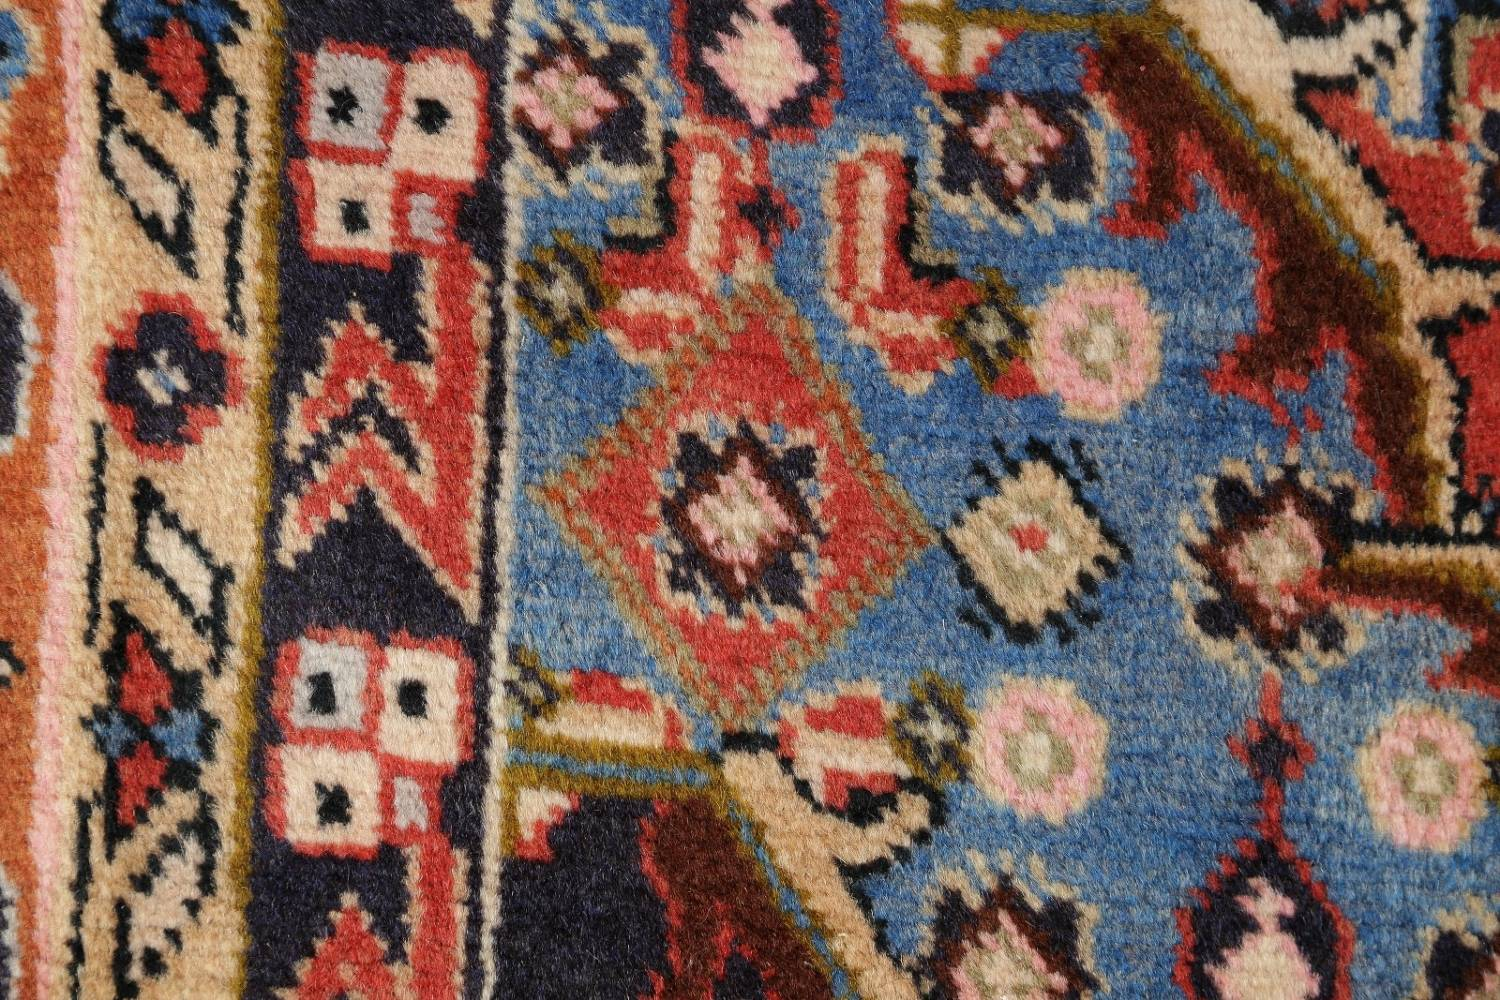 Geometric Red Ardebil Persian Hand-Knotted 6x10 Wool Area Rug image 9